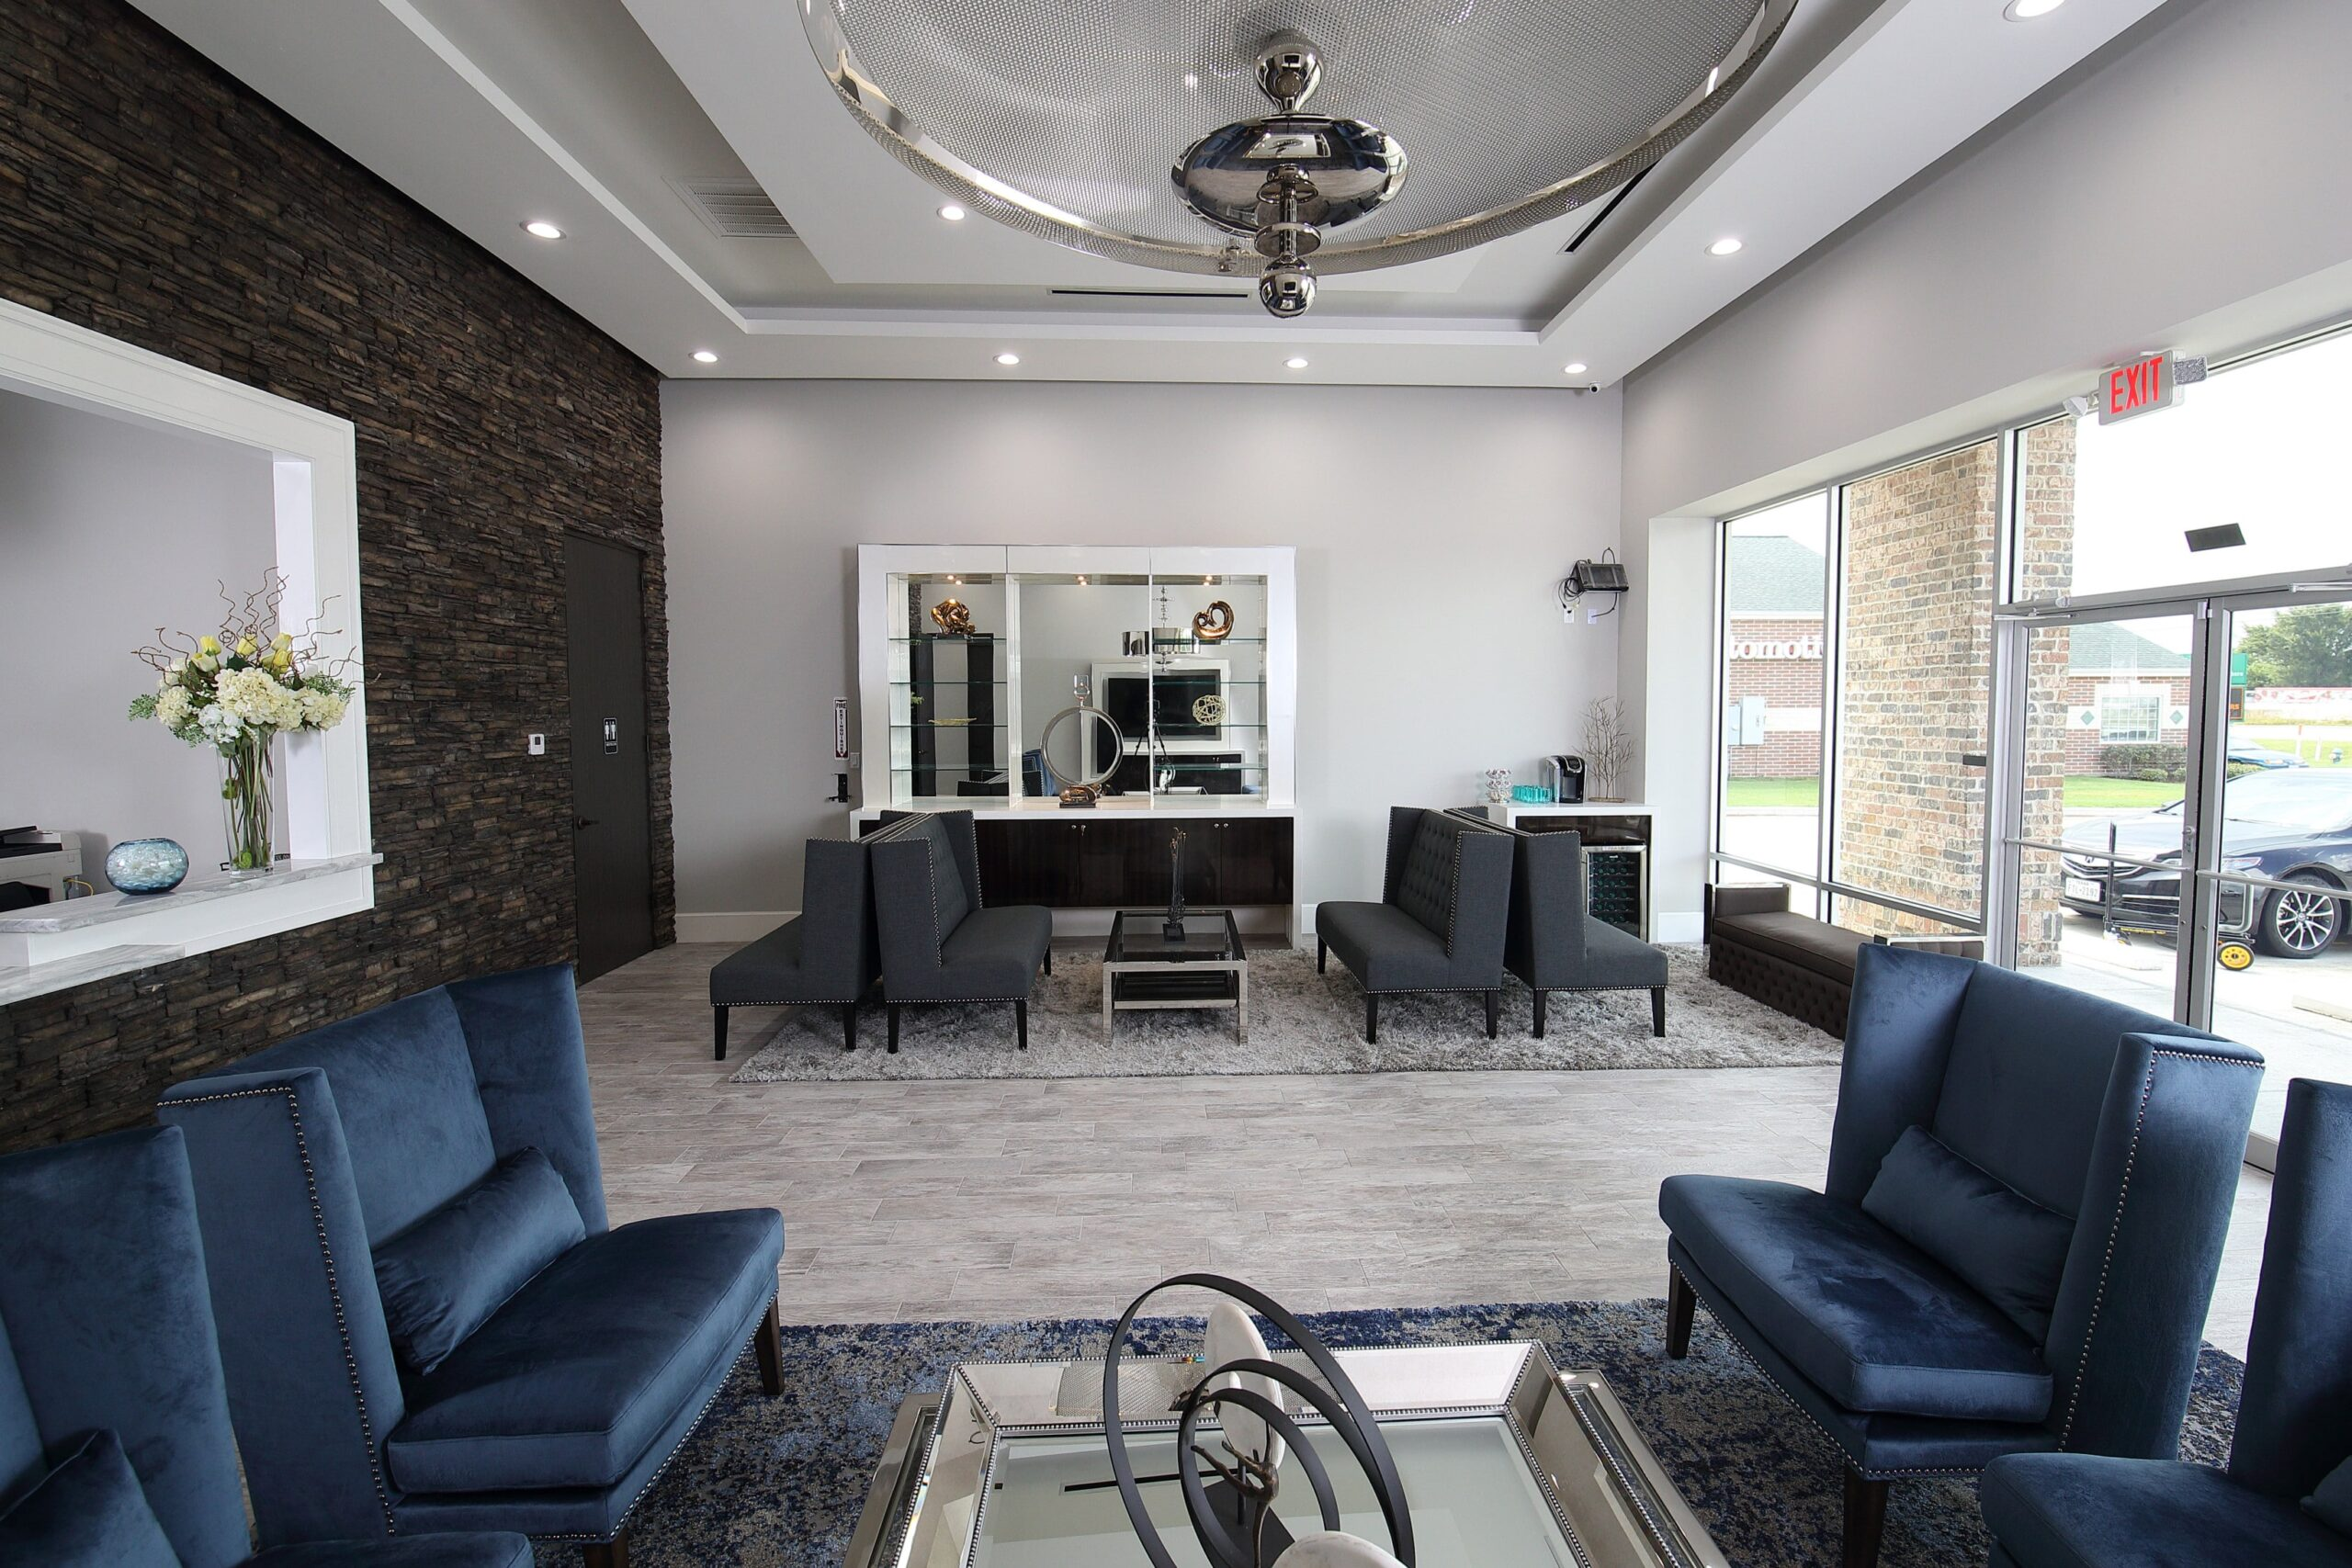 Commercial | Nikko Dermatology | Classy Cobalt | Commercial Remodel | Cypress, TX | 2016